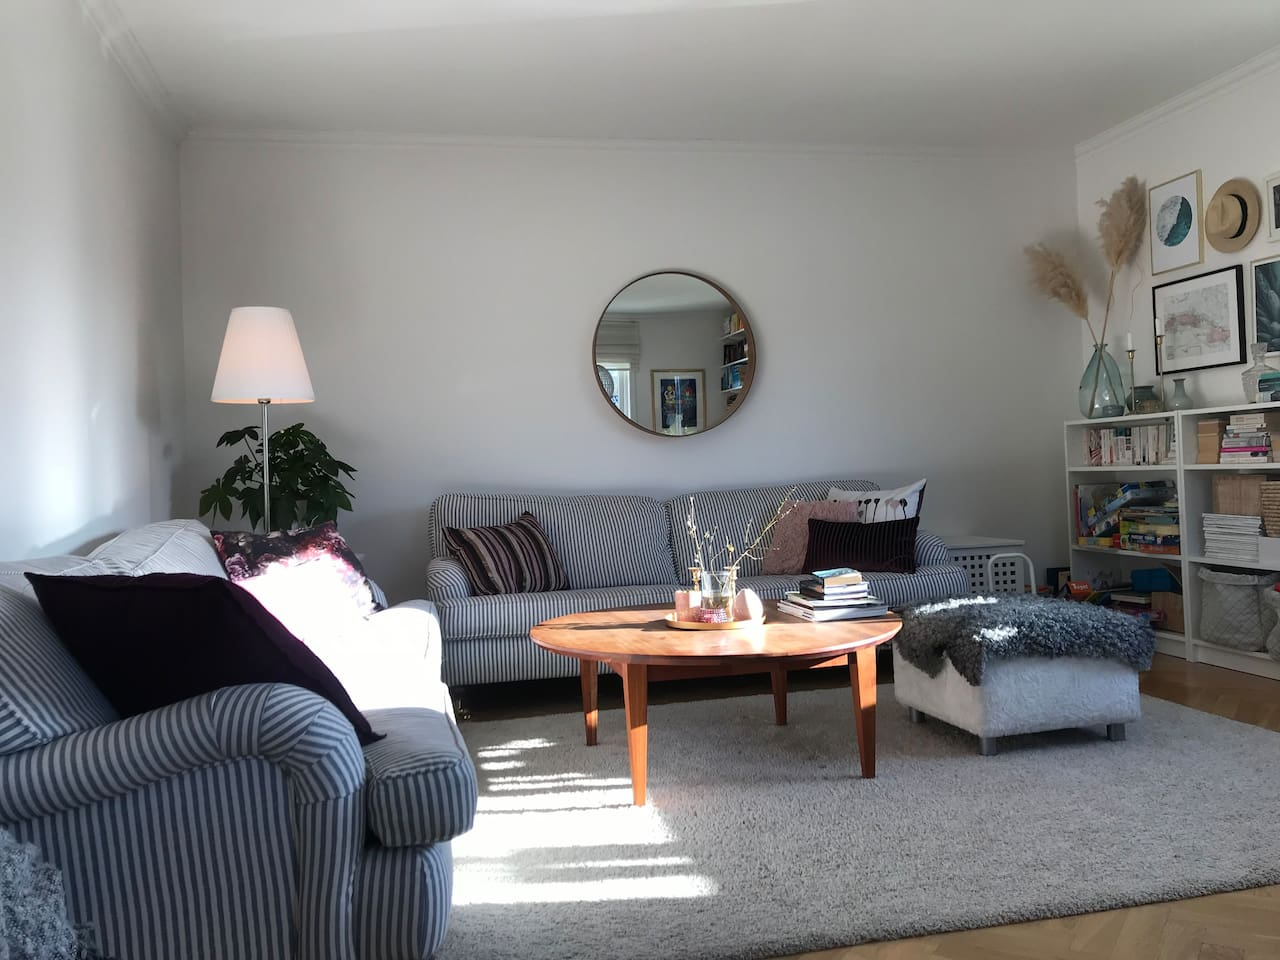 Living room with two sofas and a dinner table seating up to 10 people.